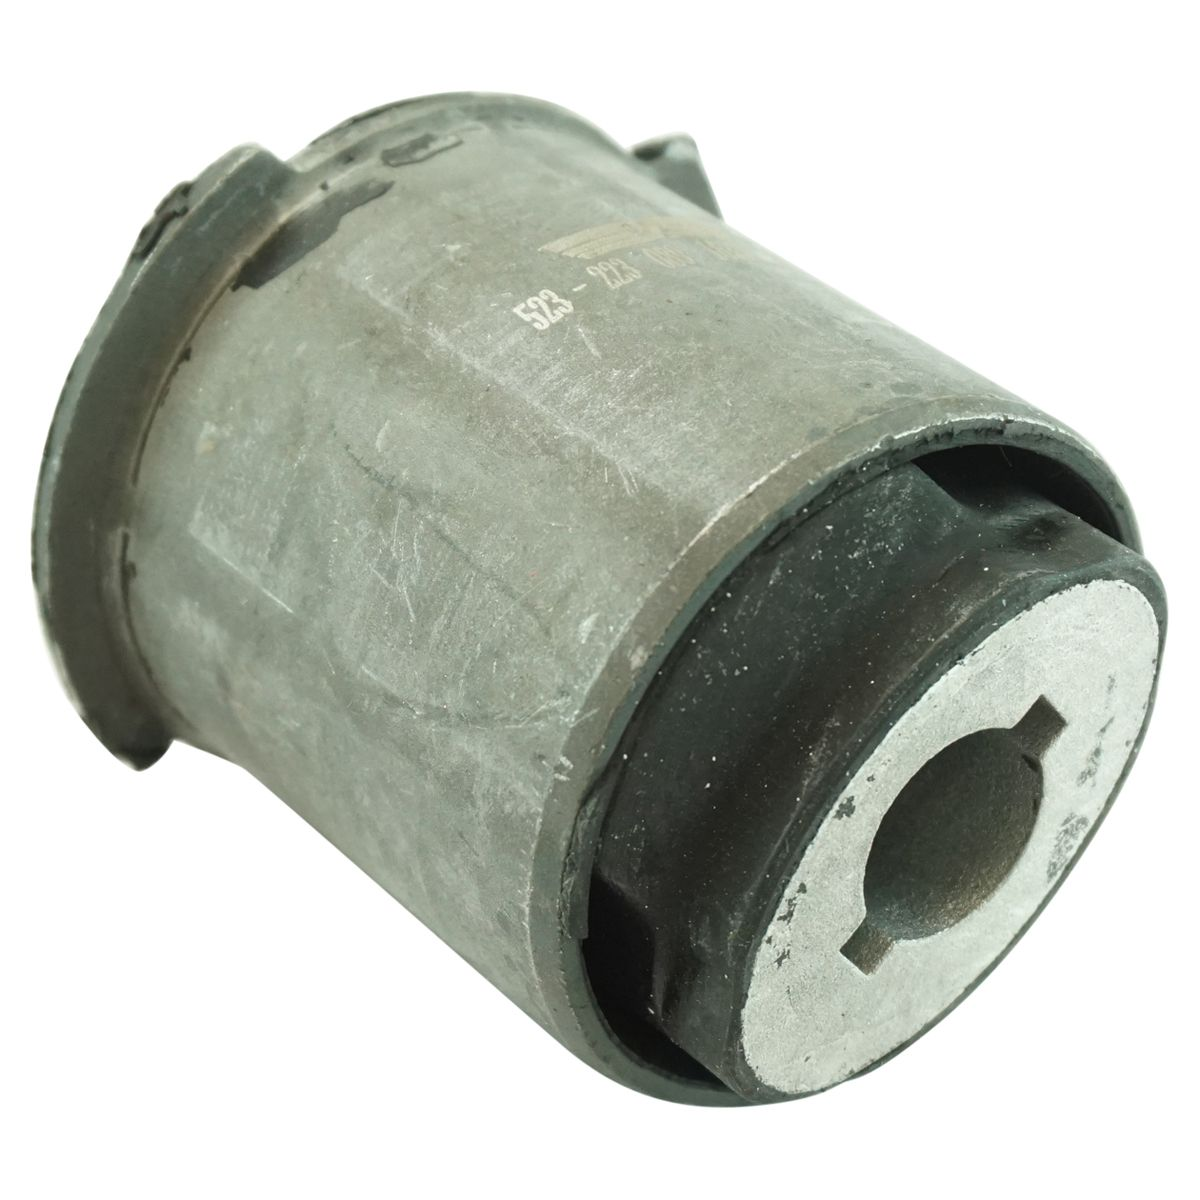 Details about Dorman 523-223 Differential Mounting Bushing Rear for  Cadillac CTS SRX STS New